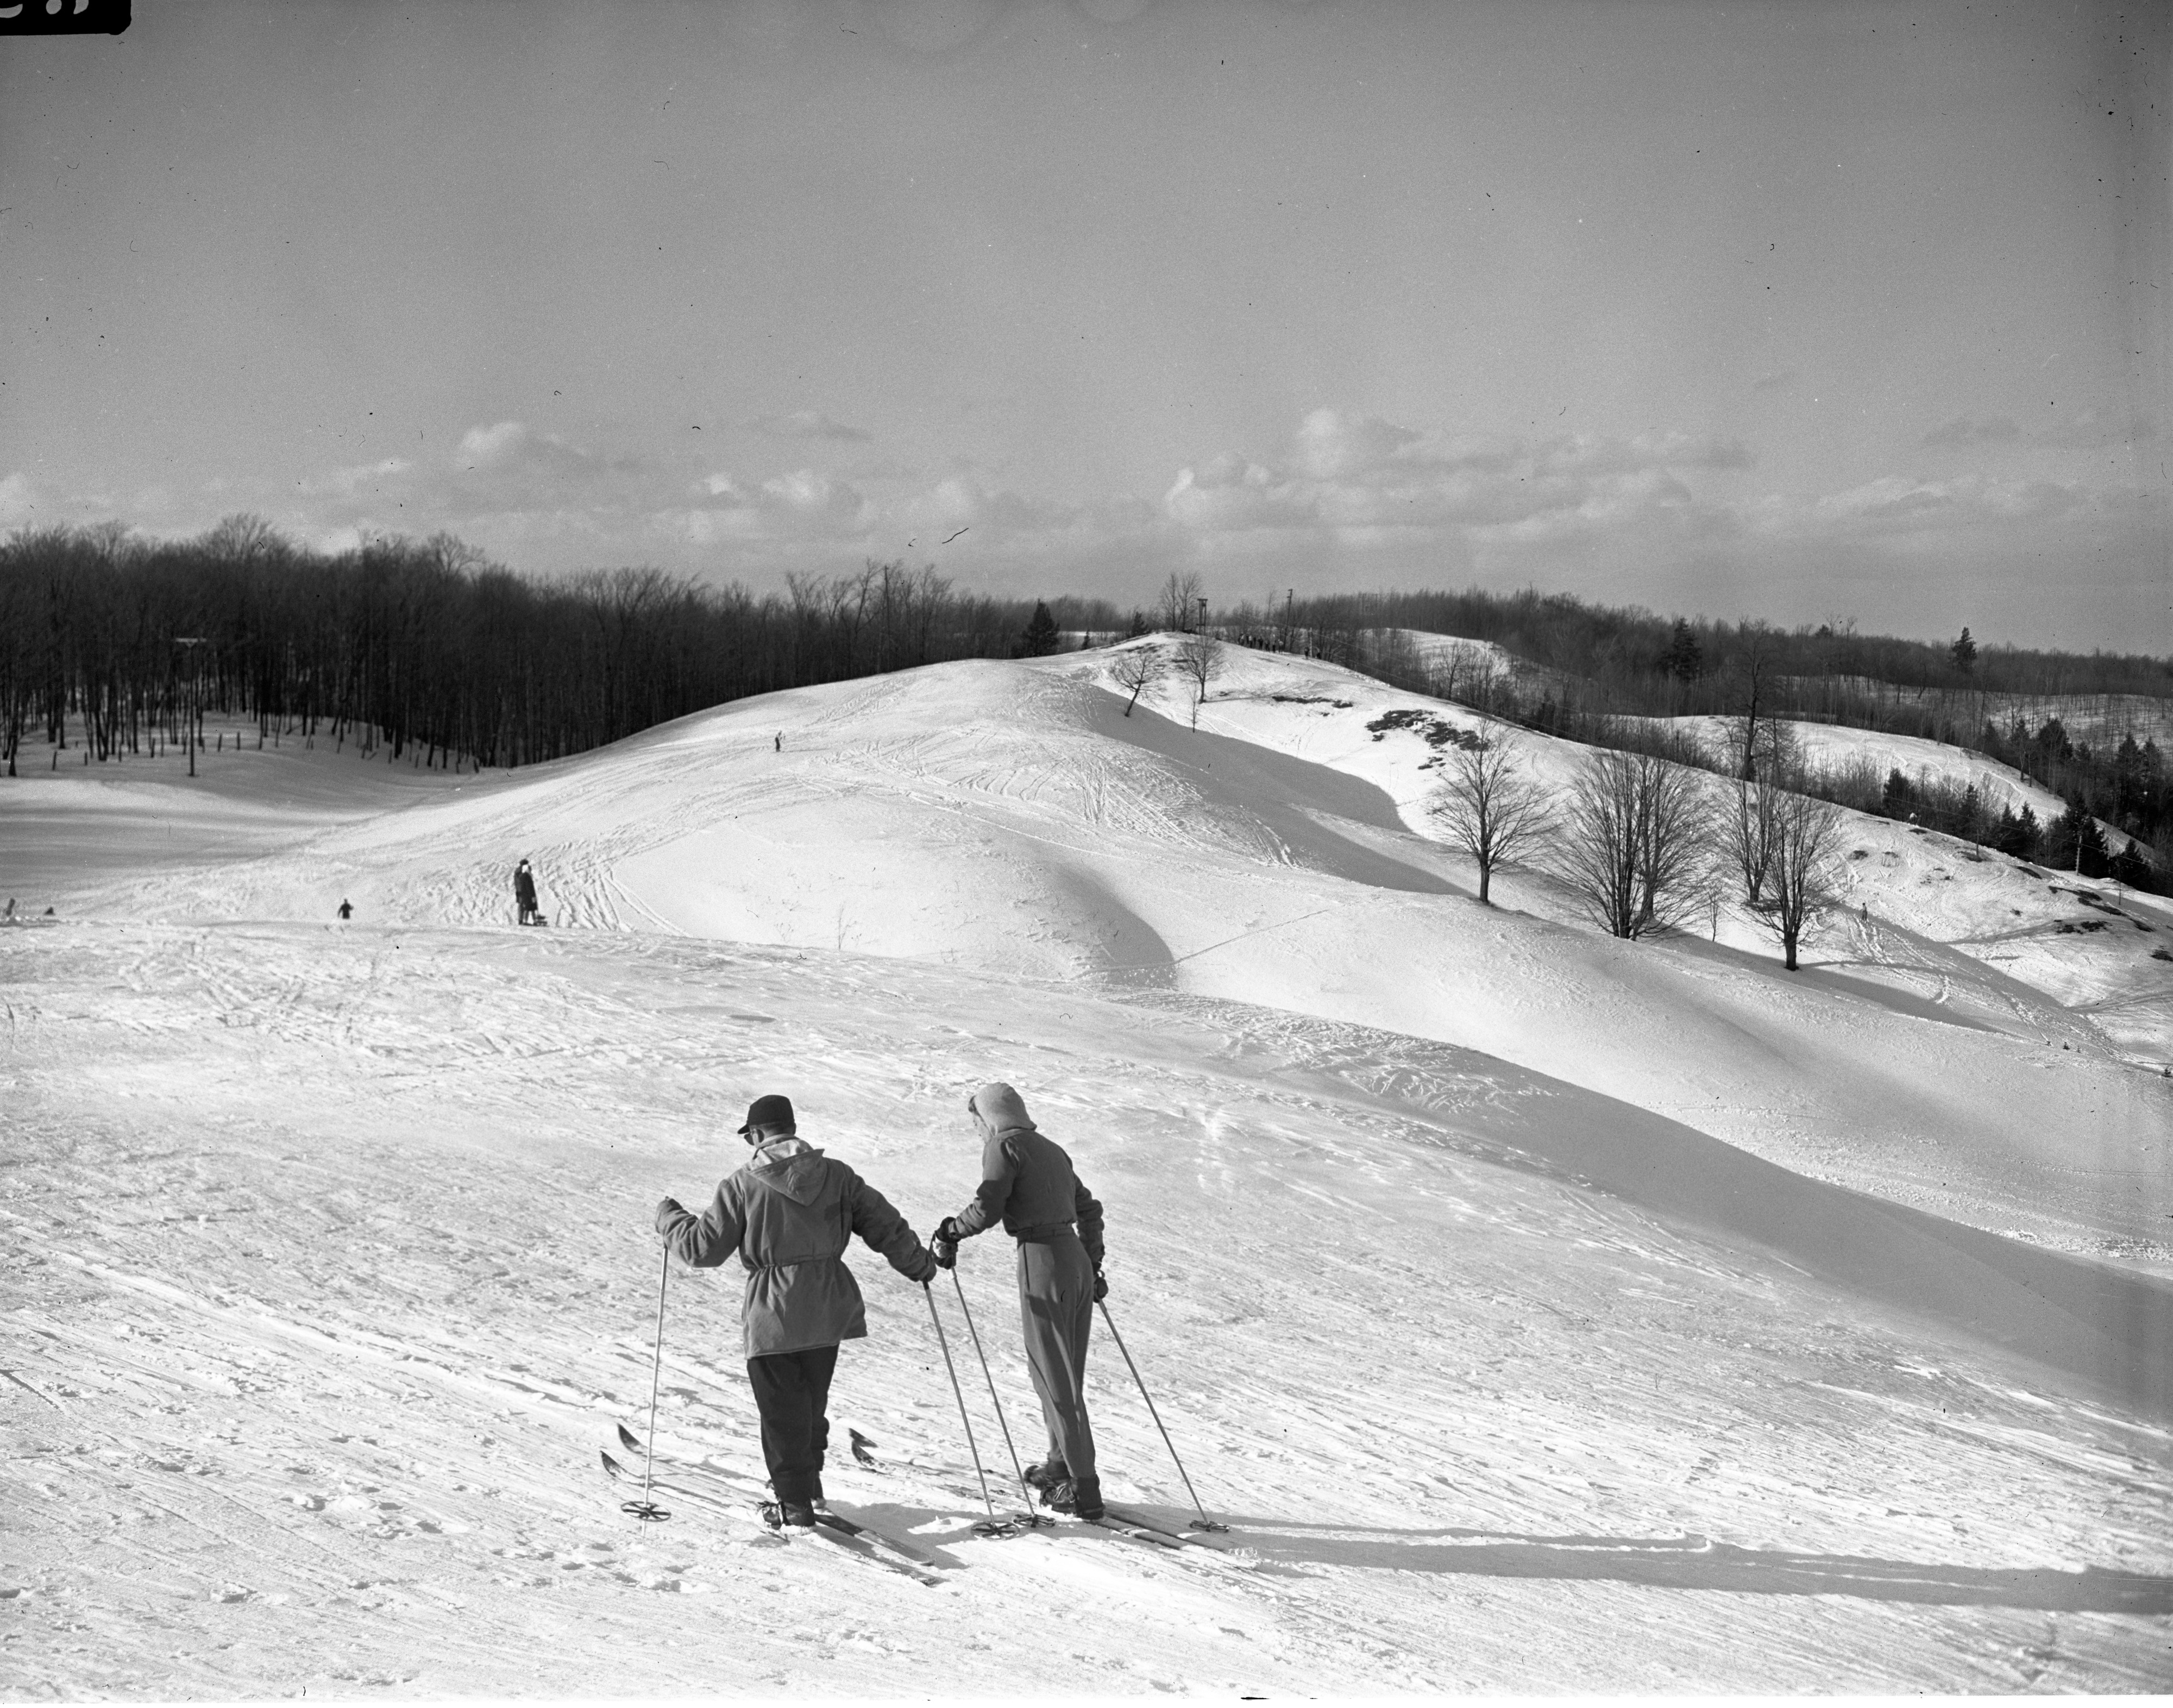 Alain And Stephanie Almon Skiing At The Otsego Club In Gaylord, February 1946 image